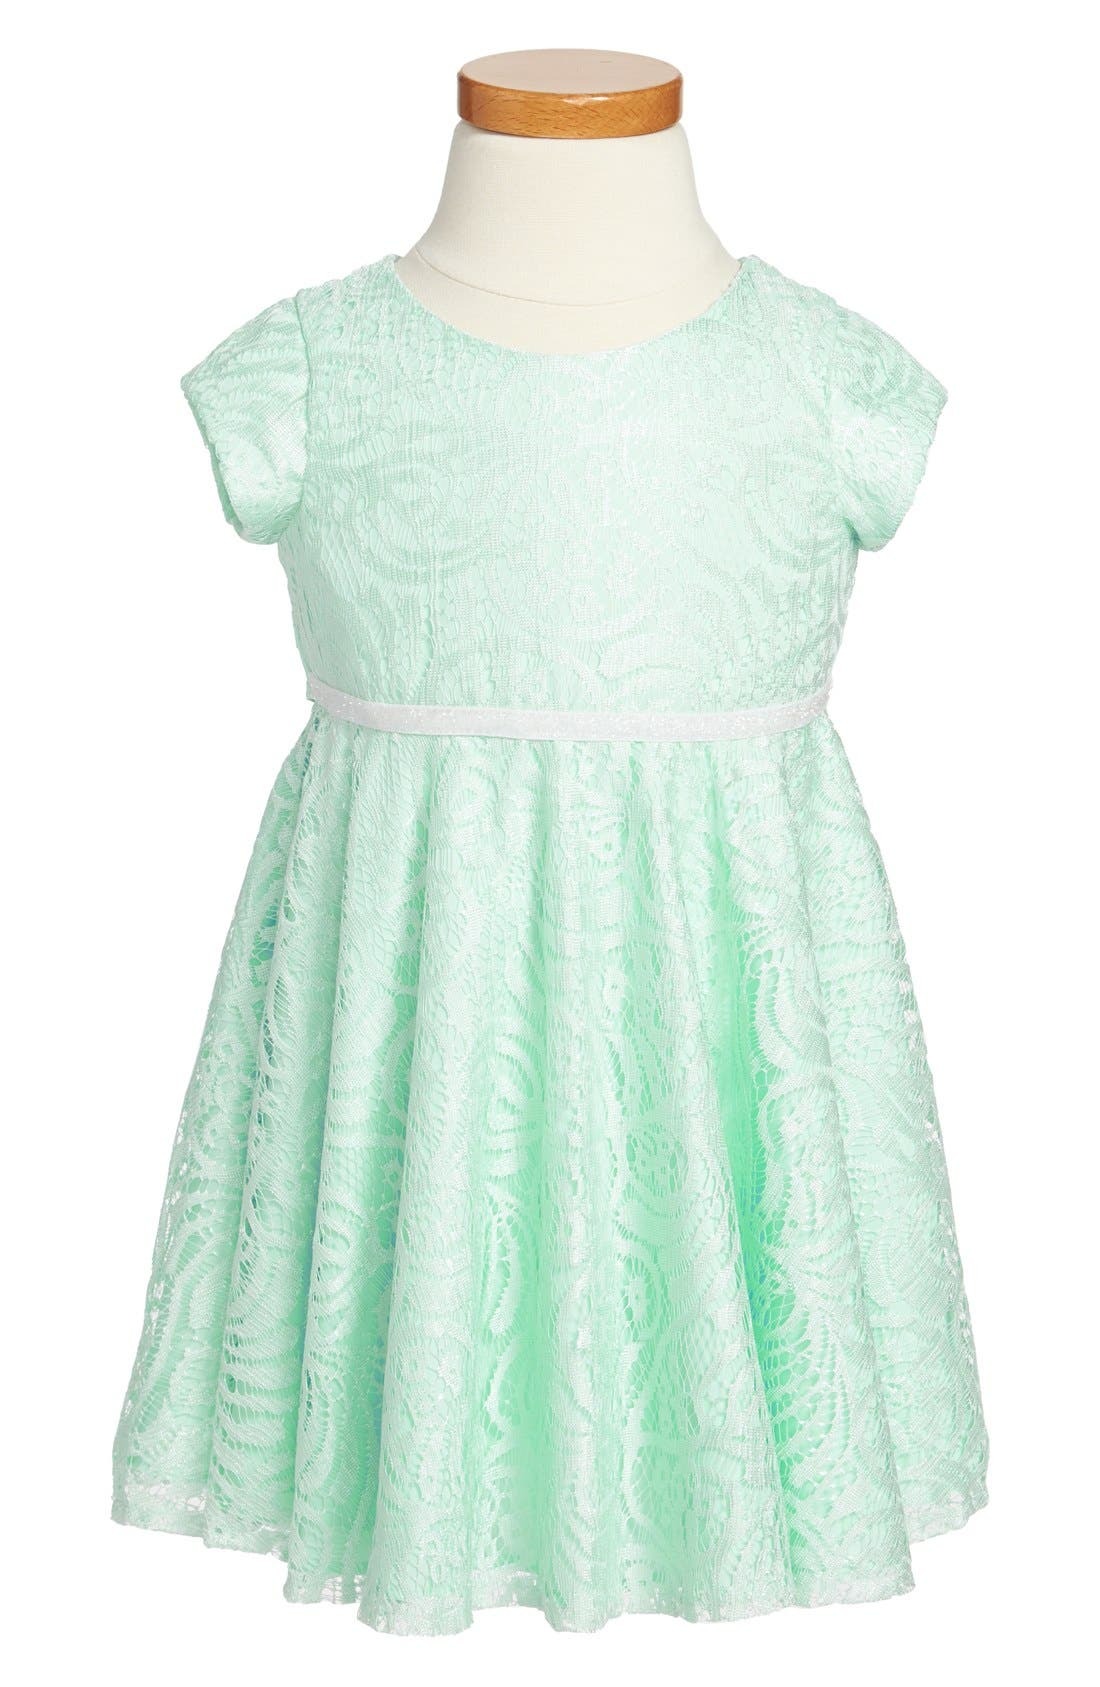 Main Image - Pippa & Julie Lace Skater Dress (Toddler Girls)